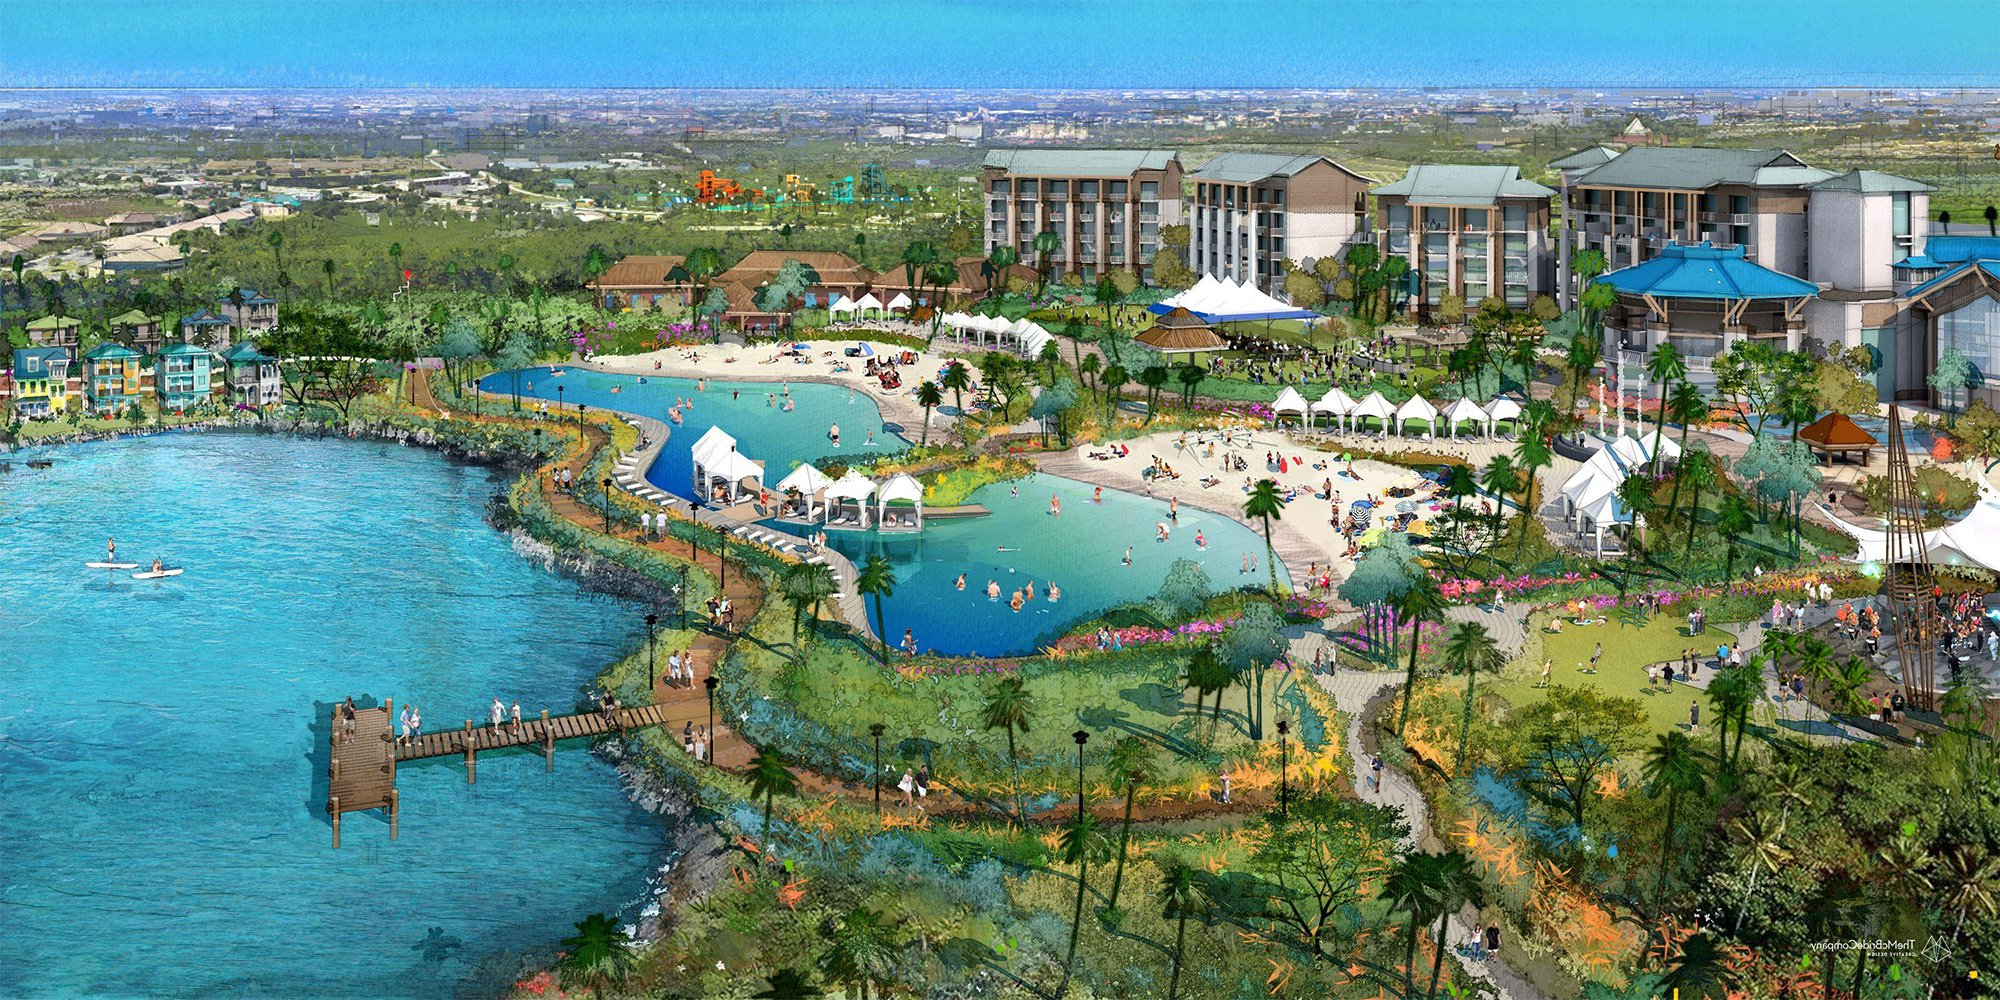 Travel: The New Margaritaville Resort Is Opening Orlando's